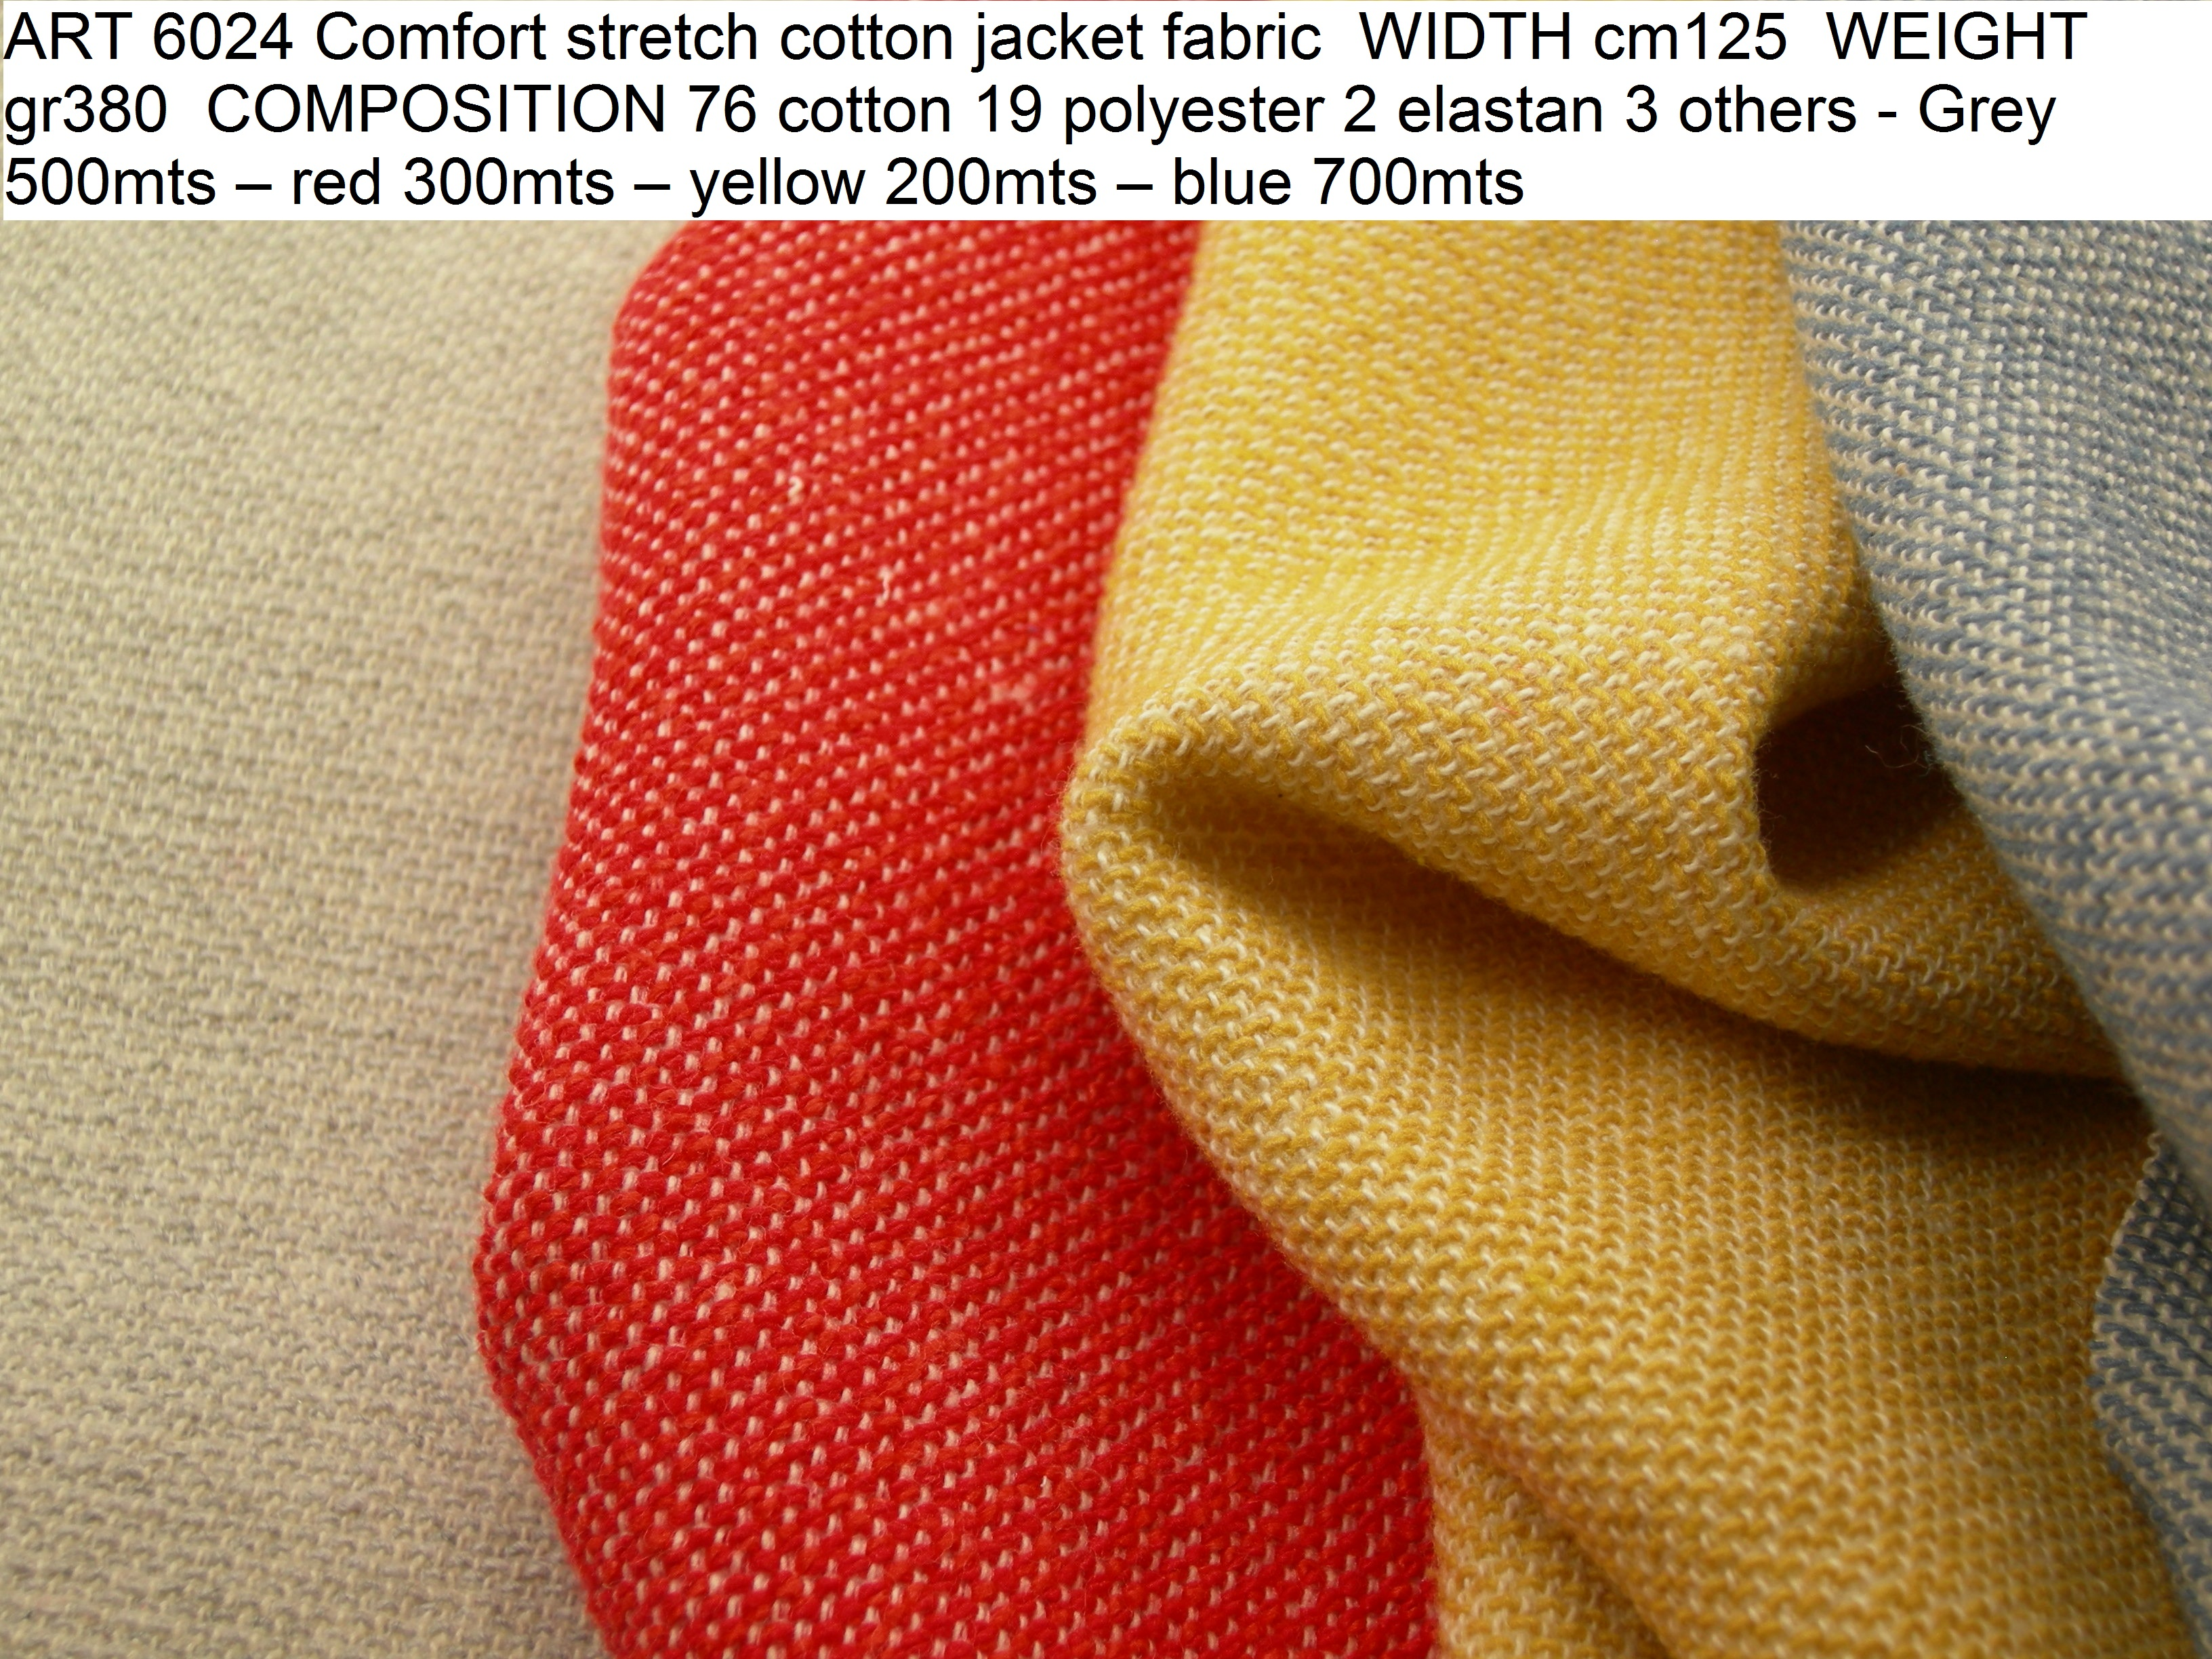 ART 6024 Comfort stretch cotton jacket fabric WIDTH cm125 WEIGHT gr380 COMPOSITION 76 cotton 19 polyester 2 elastan 3 others - Grey 500mts – red 300mts – yellow 200mts – blue 700mts